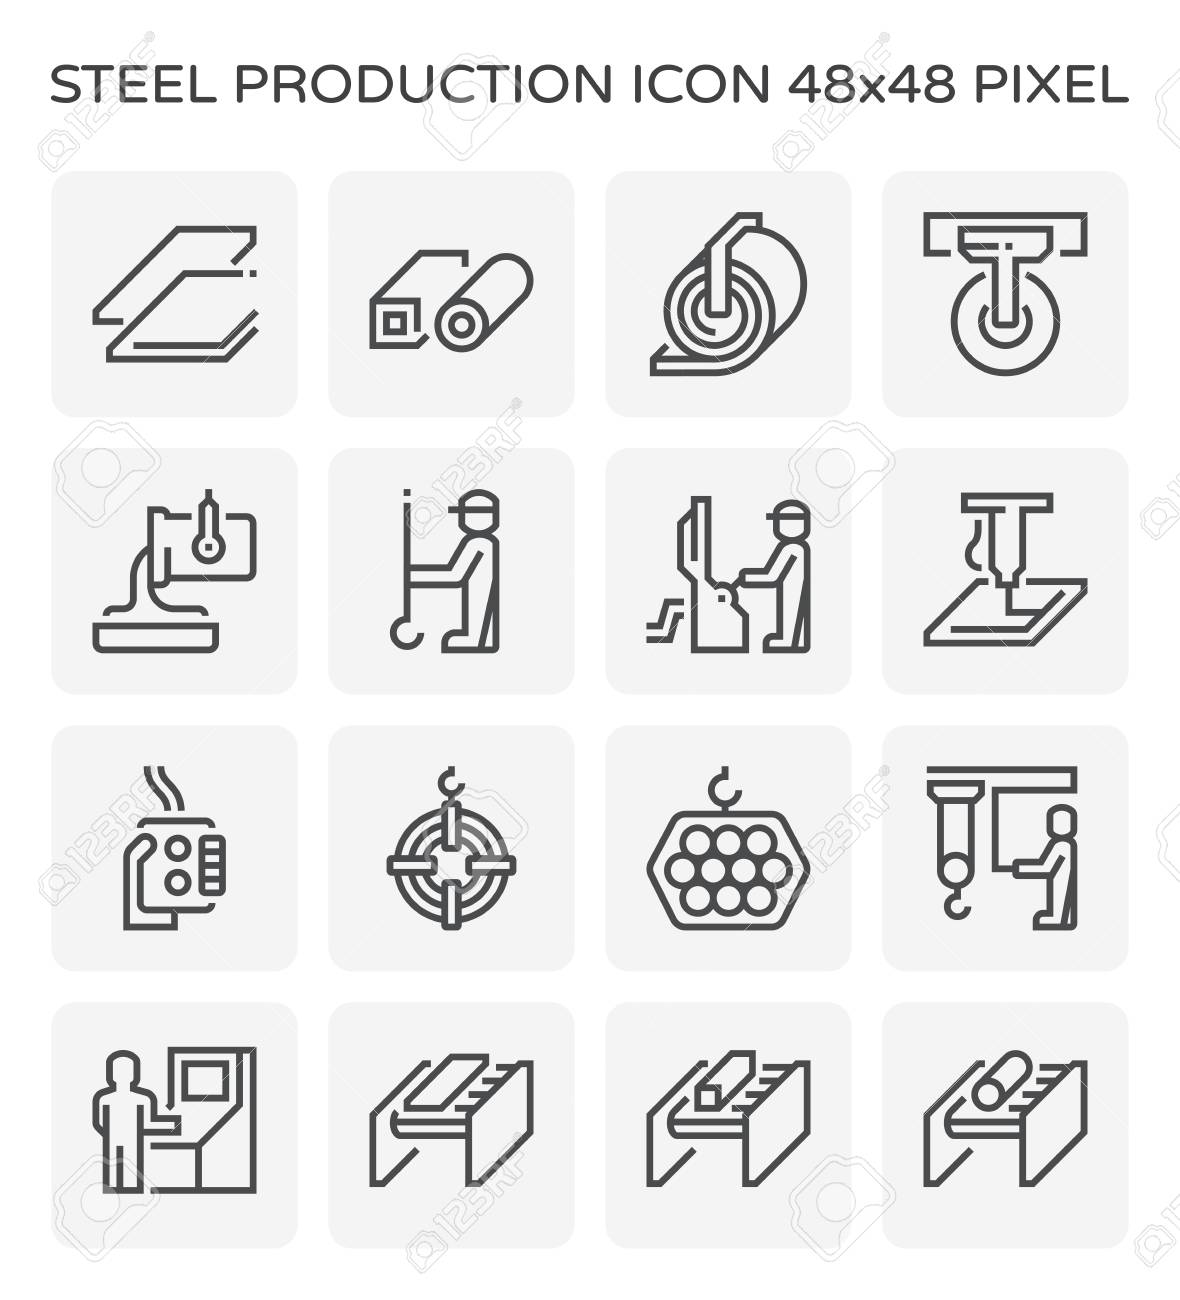 Steel production and pipe icon set, 64x64 pixel perfect and editable